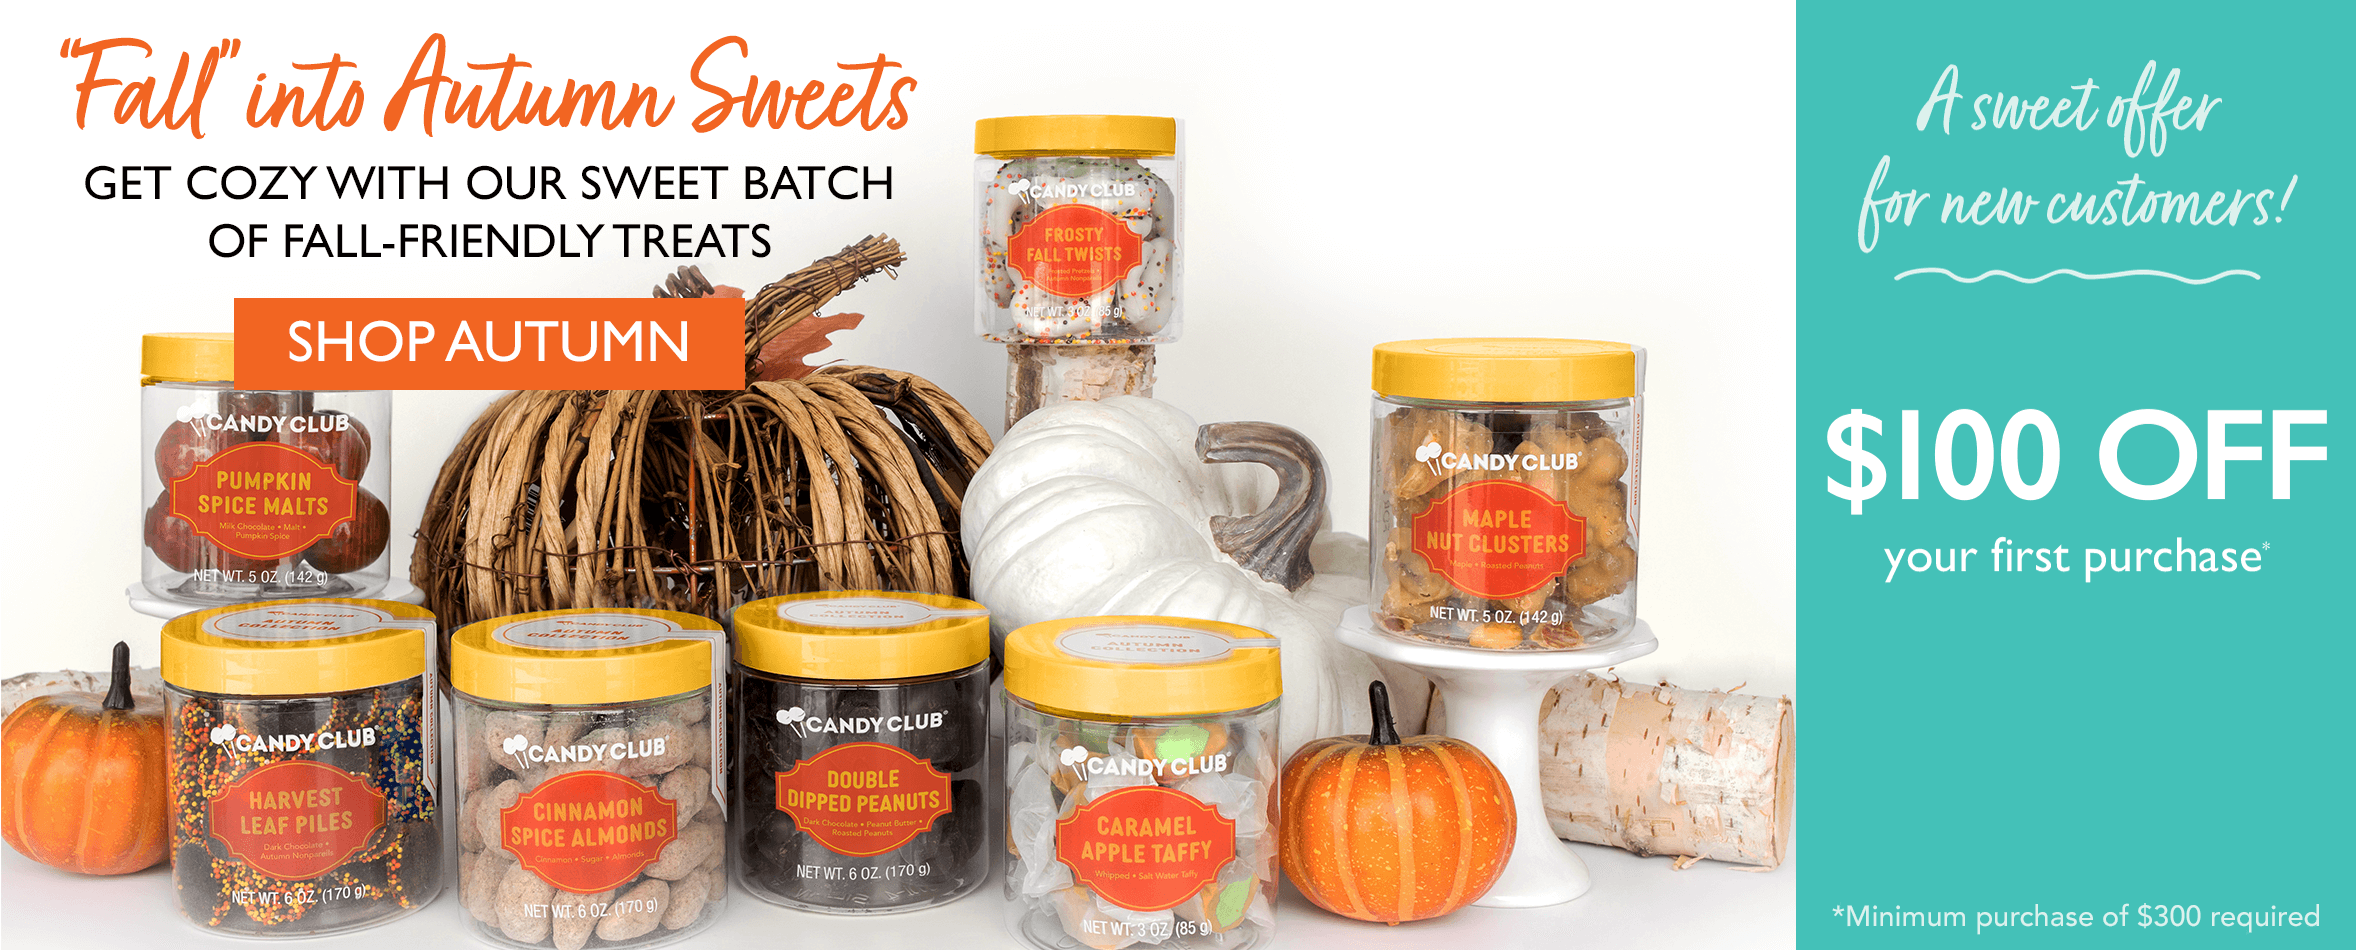 'Fall' into autumn sweets. Get cozy with our sweet batch of fall-friendly treats. Shop Autumn